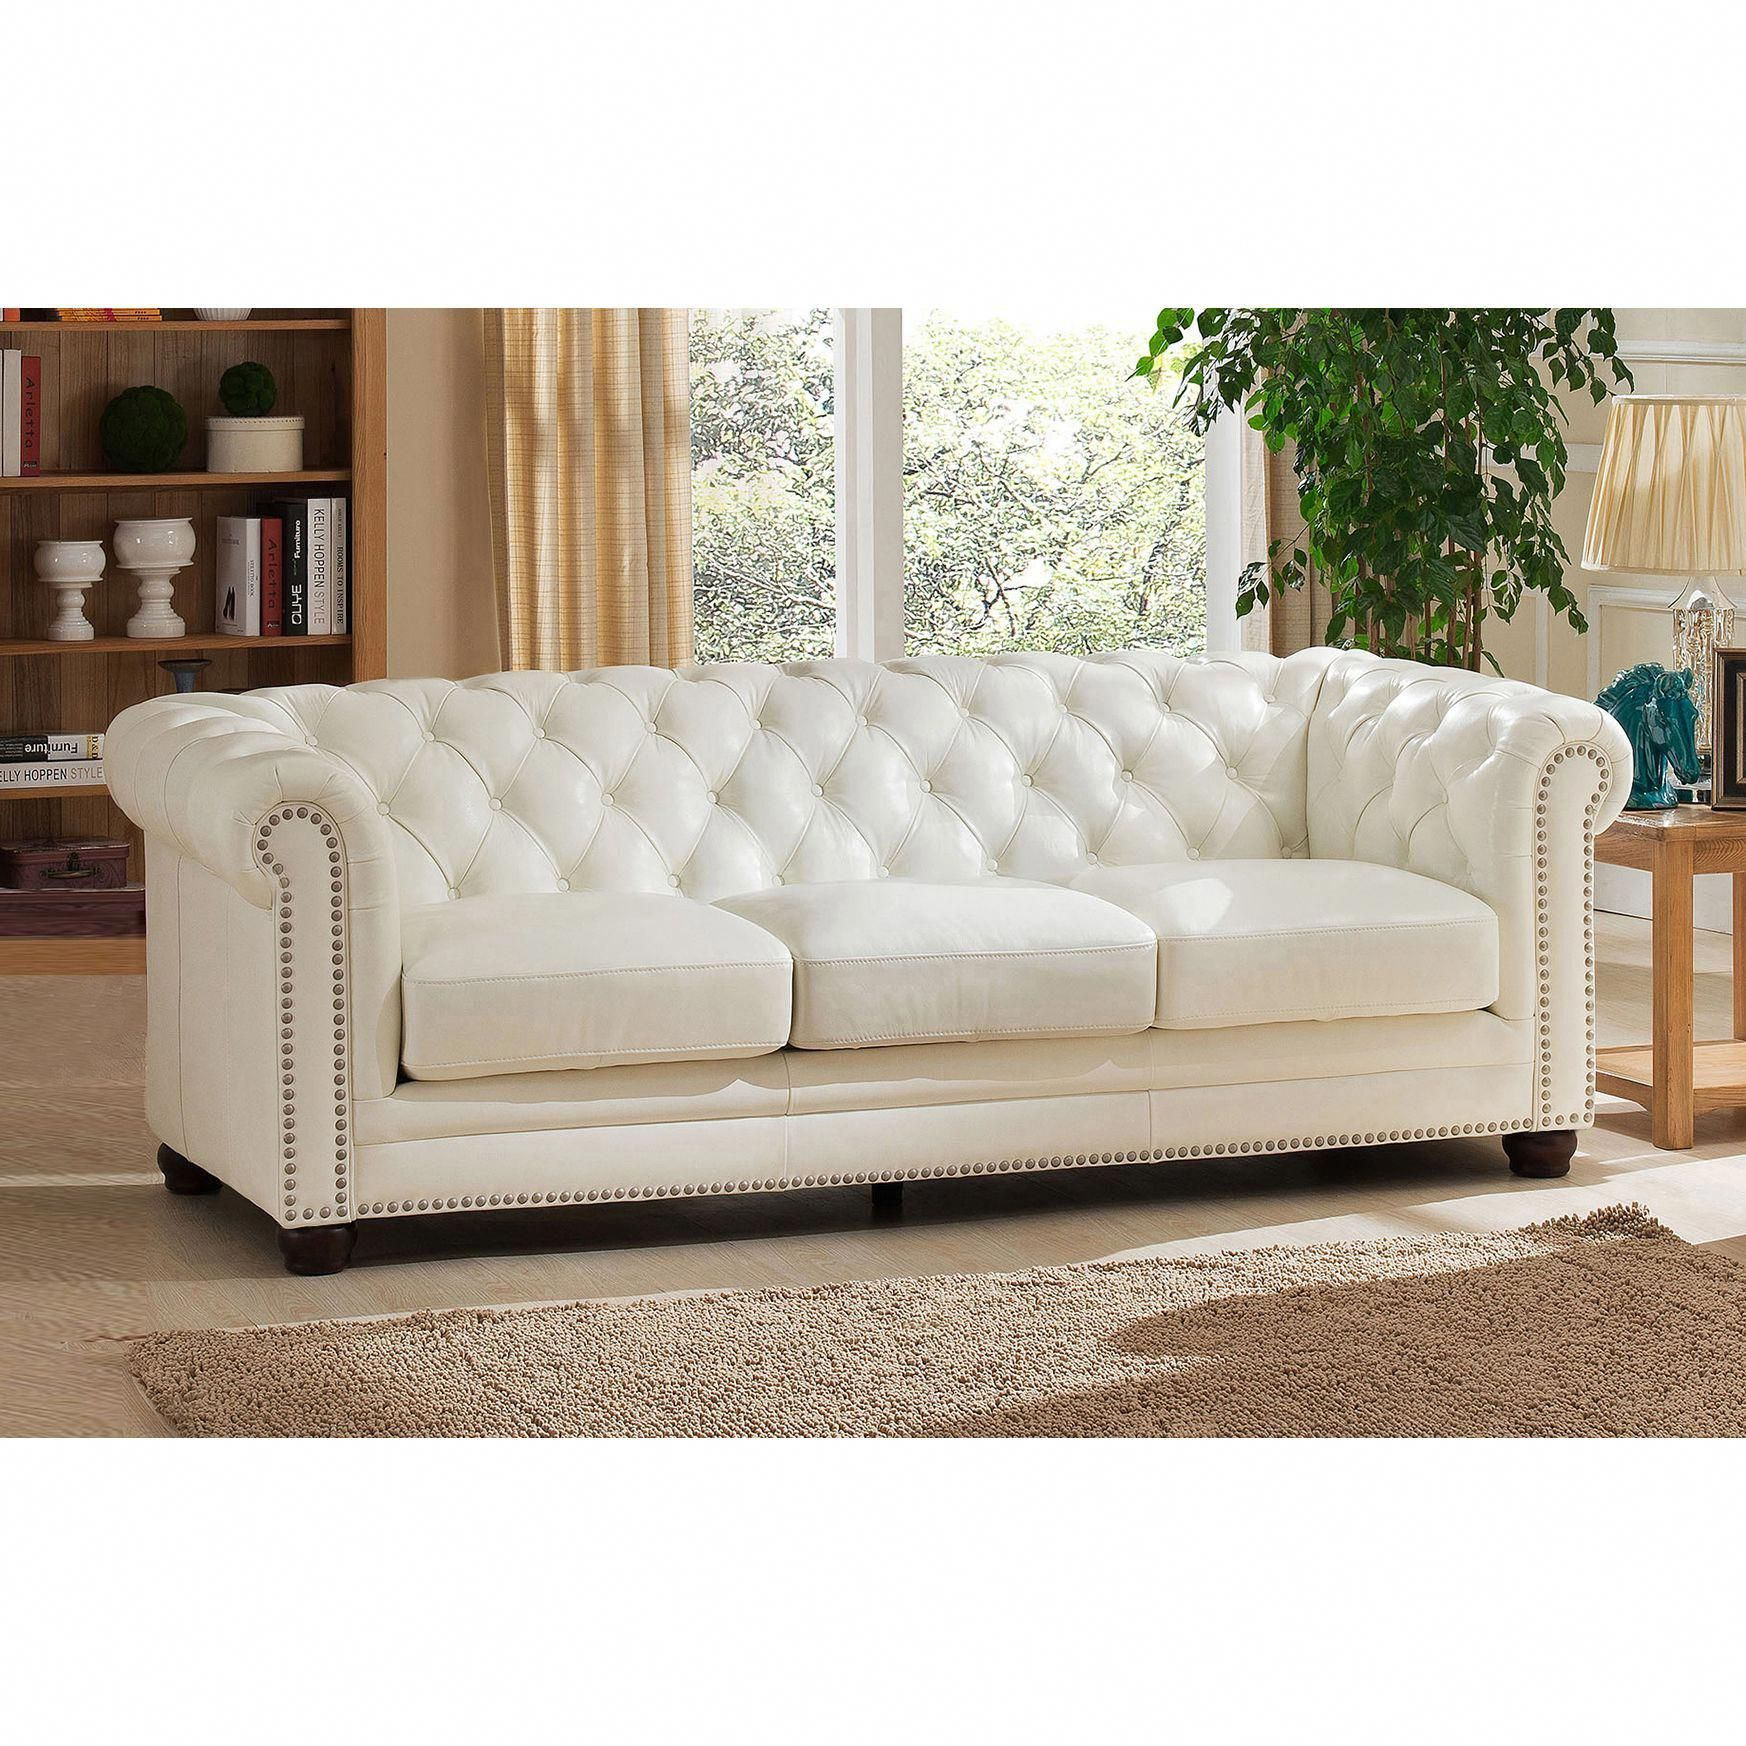 Nashville White Genuine Leather Chesterfield Sofa With Feather Down Seating Coja In 2020 Genuine Leather Sofa Best Leather Sofa Sofa Deals